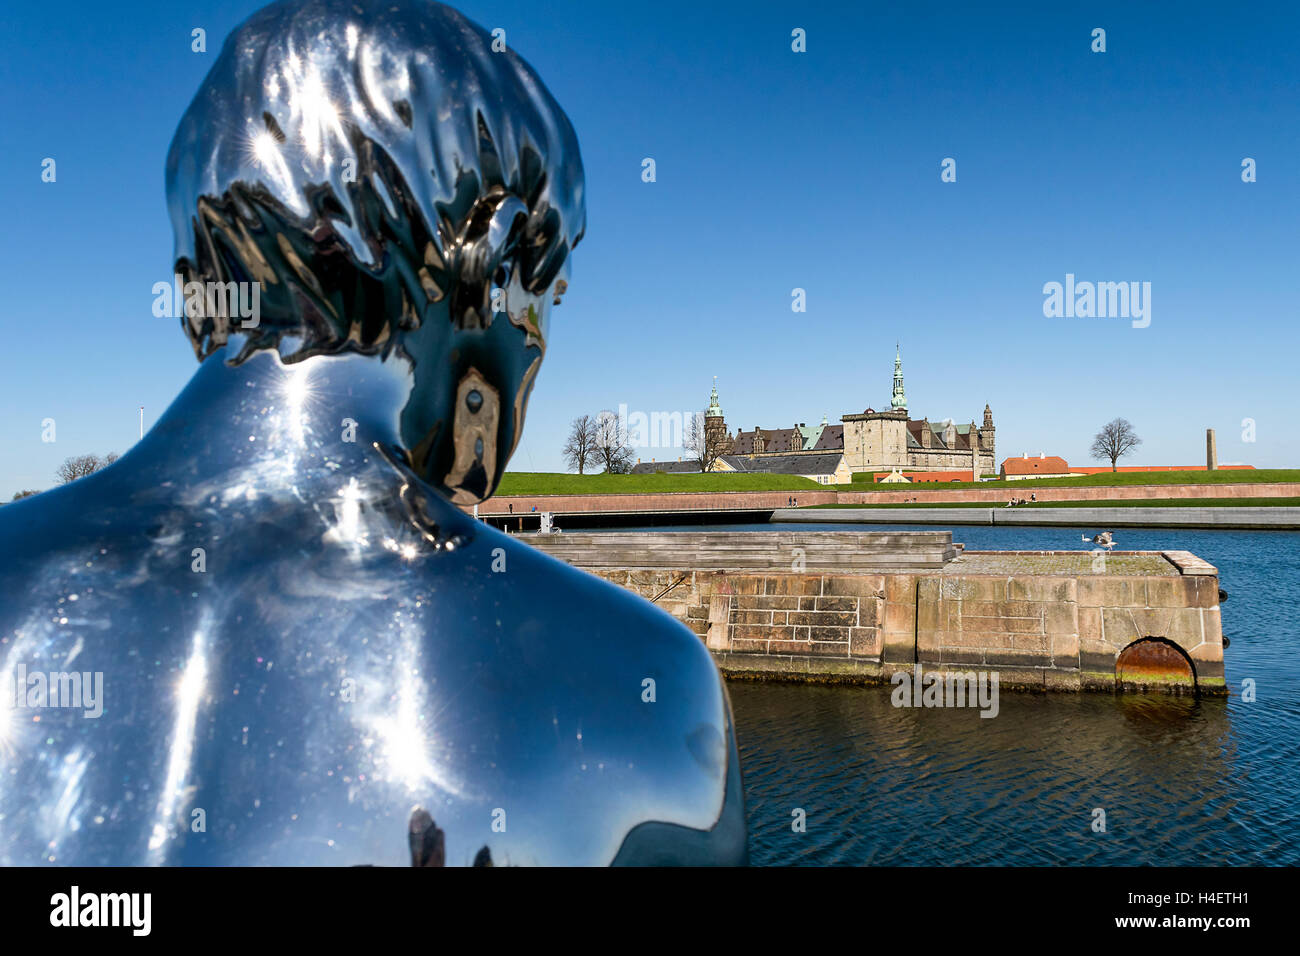 Sculpture of 'Han' (He) as looking at Kronborg Castle, residence of Hamlet, settled in a town Helsingor, - Stock Image